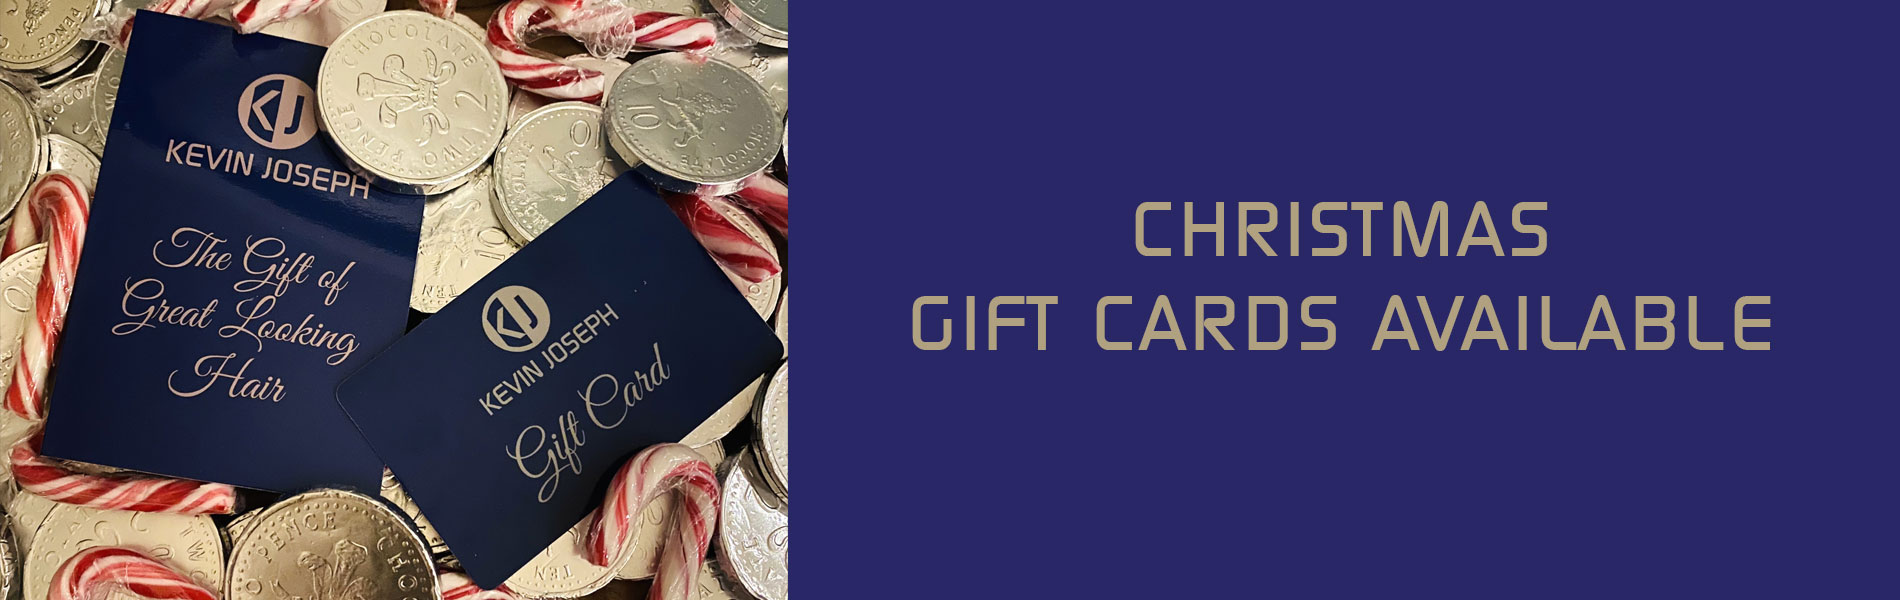 christmas gift cards available